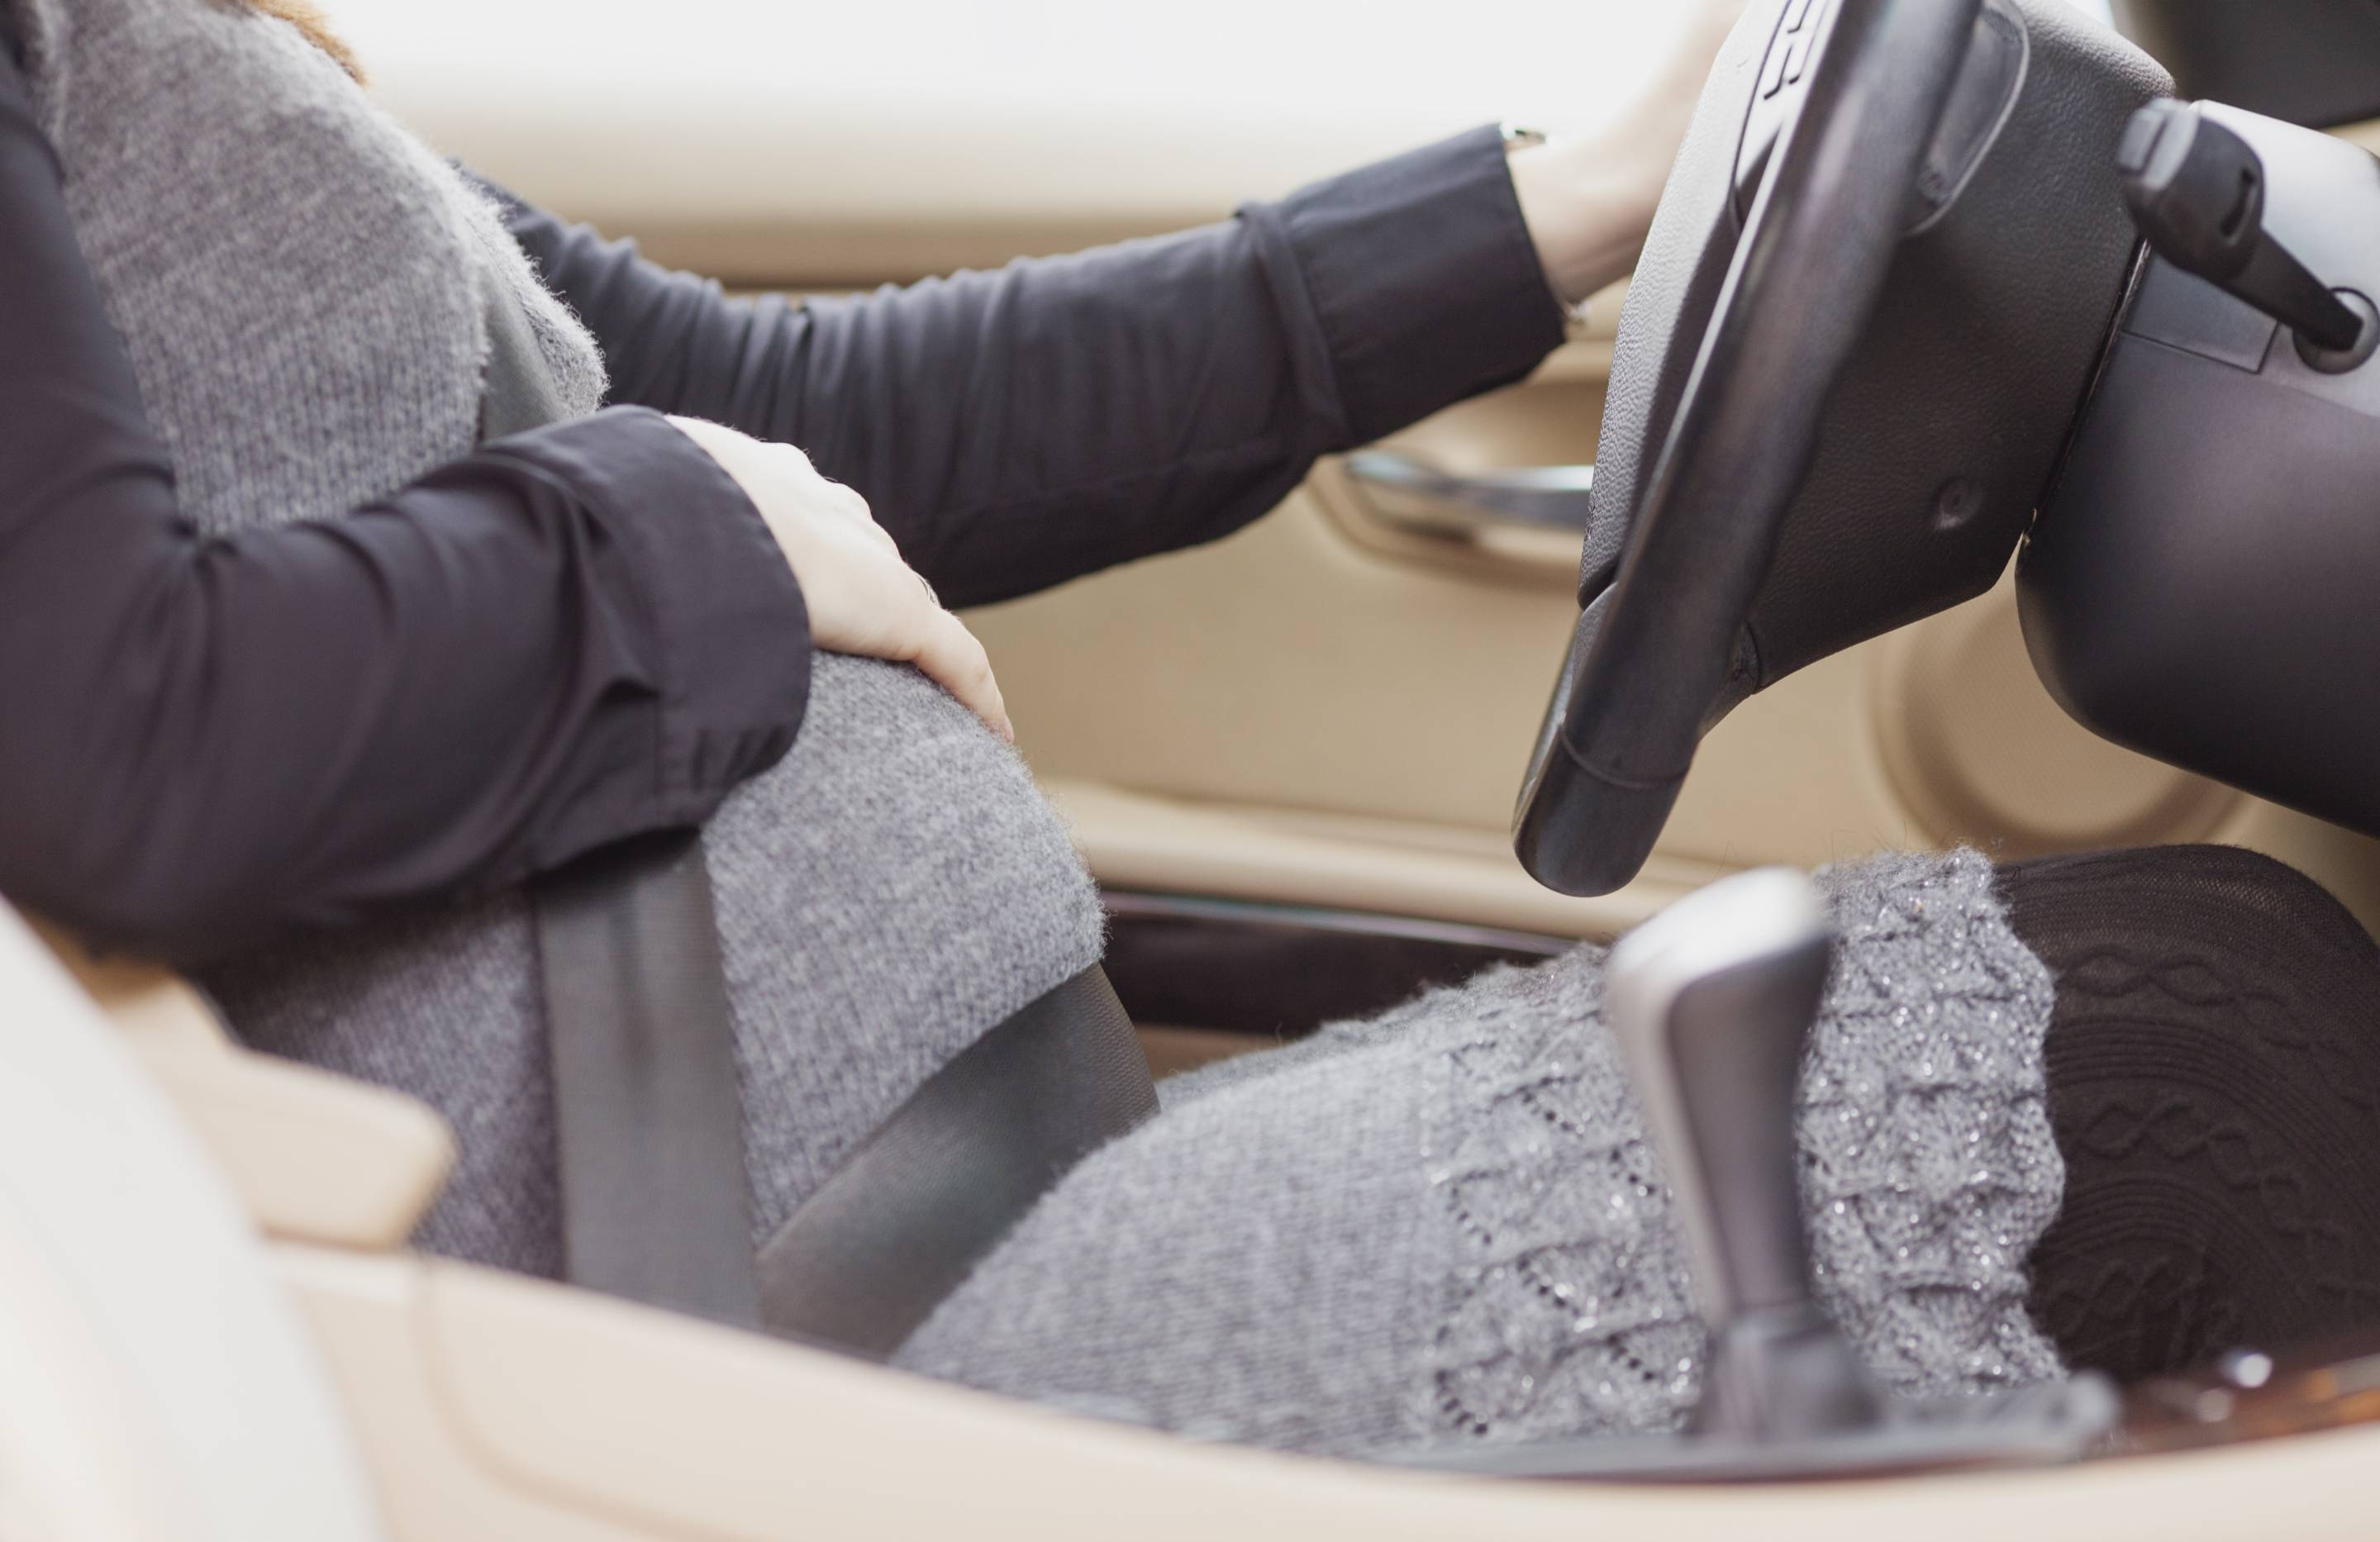 Pregnant woman driving a car with one hand